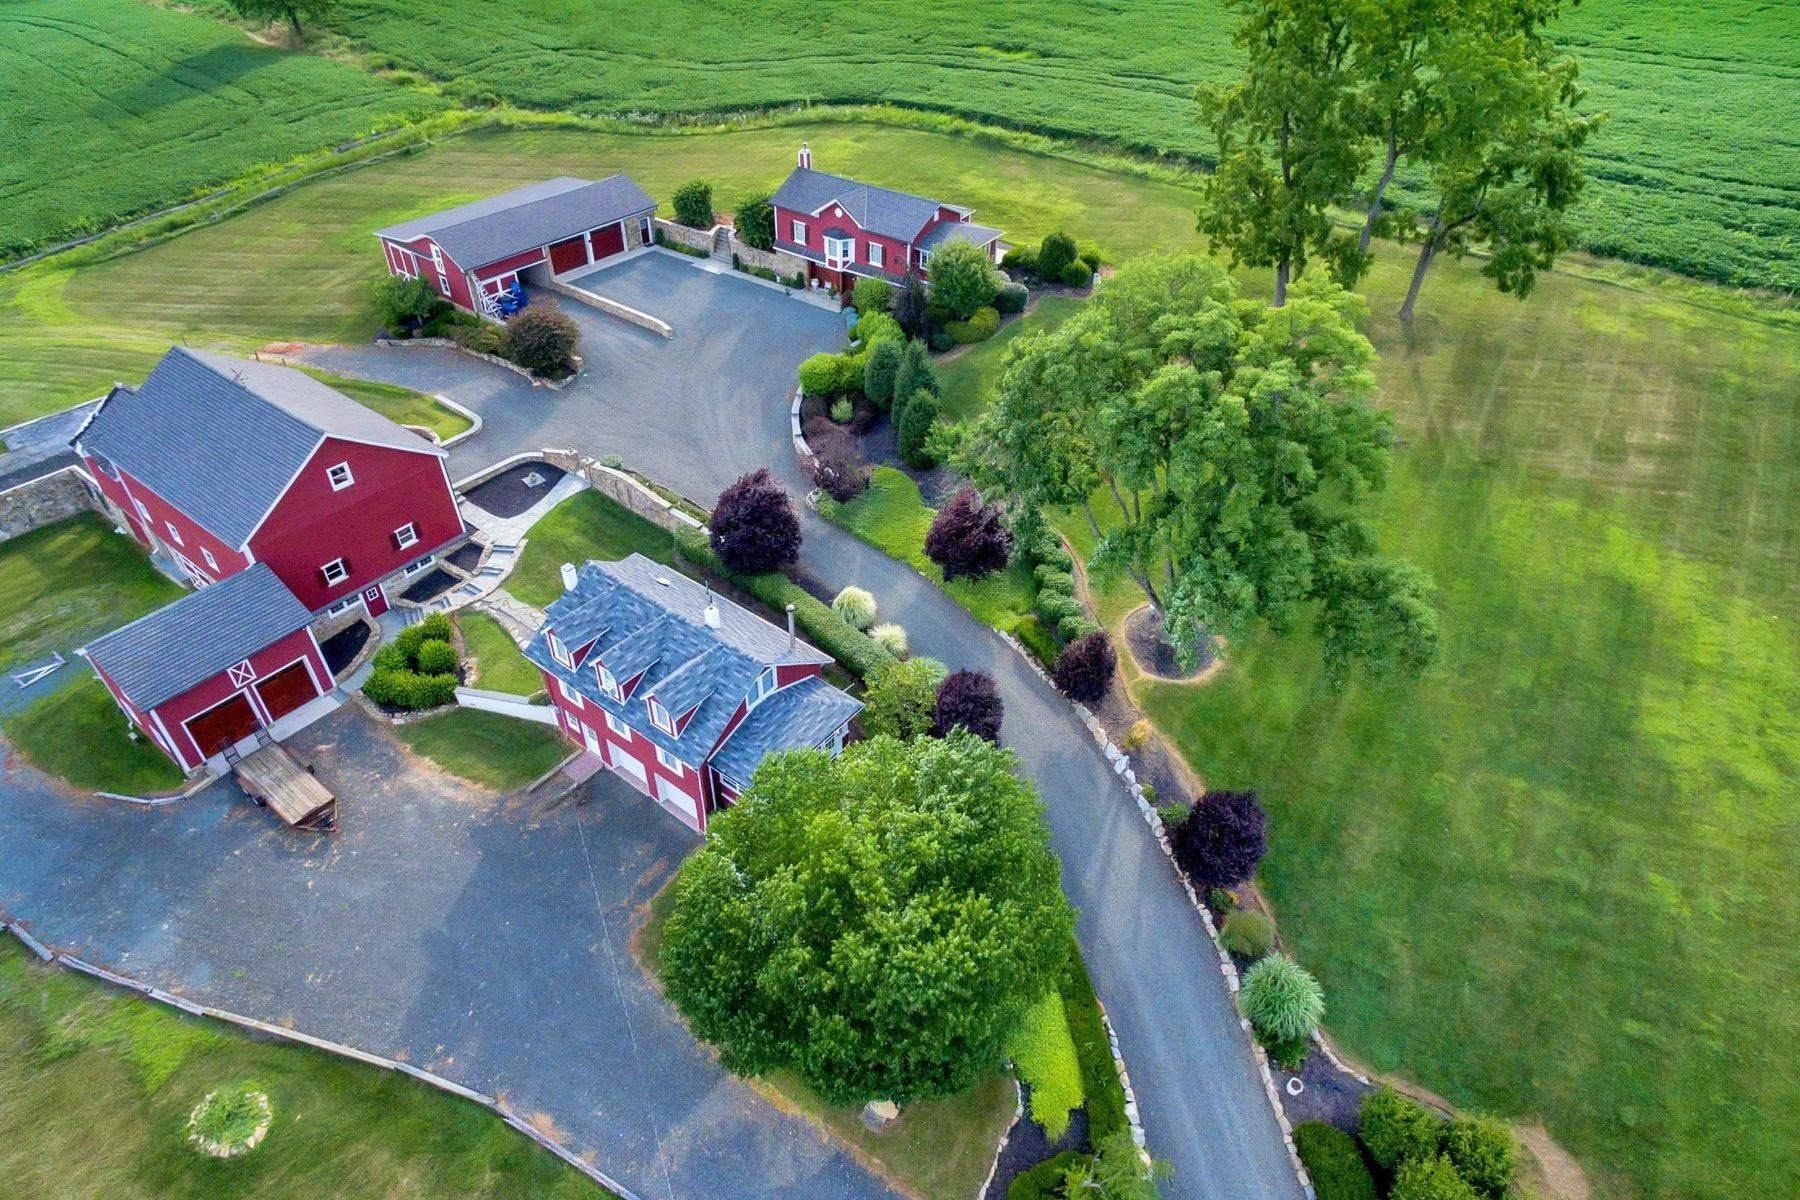 Single Family Homes for Sale at Magnificently Restored Farm 109 Old Turnpike Road, Tewksbury Township, New Jersey 08858 United States